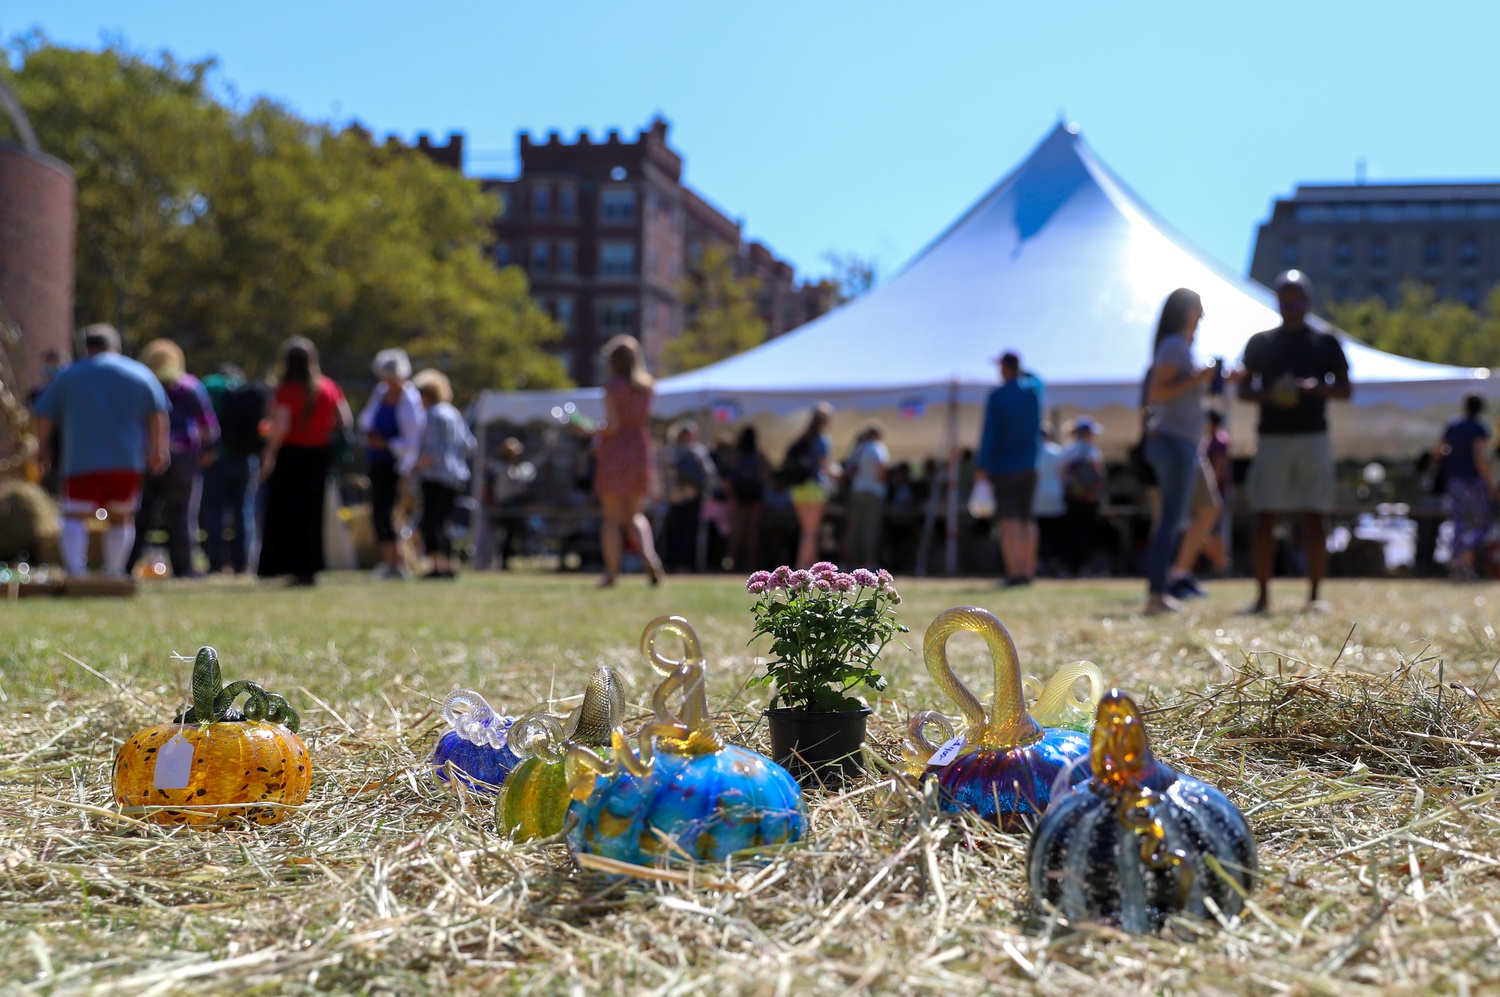 Every September since 2001, the MIT Glass Lab has hosted a sale of over 2,000 hand-blown glass pumpkins.